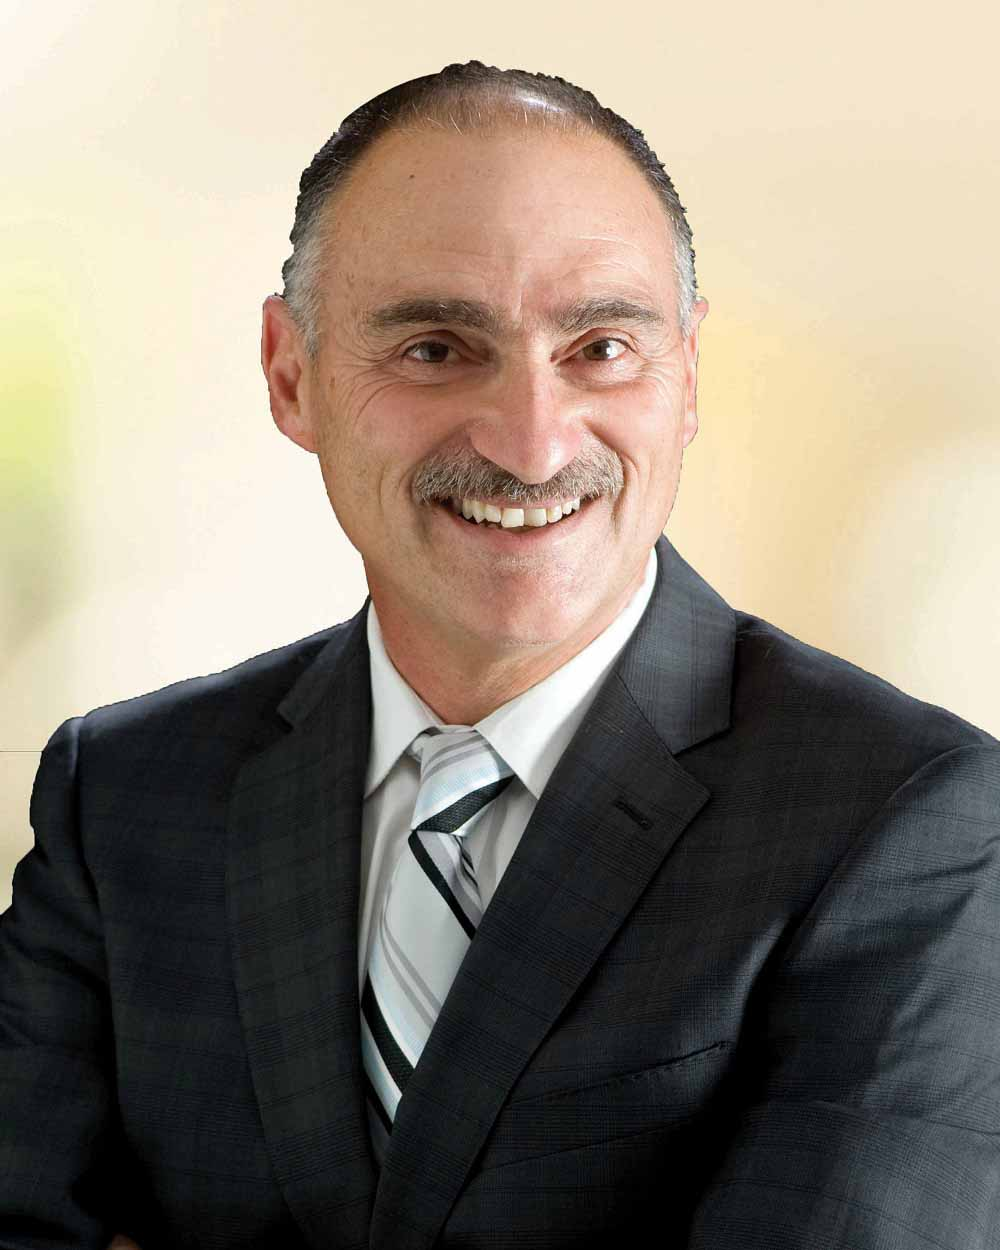 Peter Koulizos, chairman, Property Investment Professionals of Australia